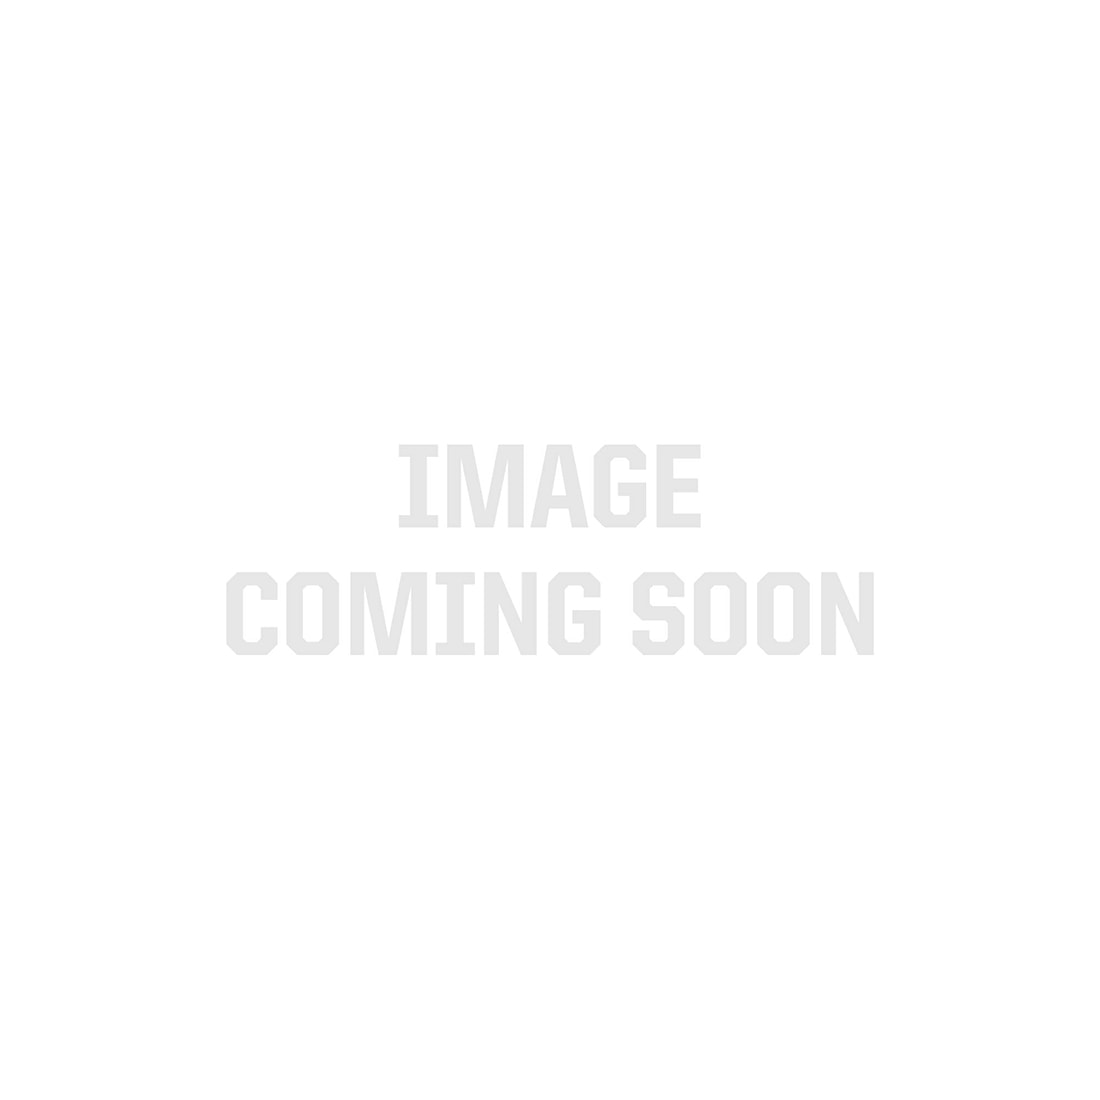 Waterproof Custom Cut LED Strip Light with 2 Conductor Wire